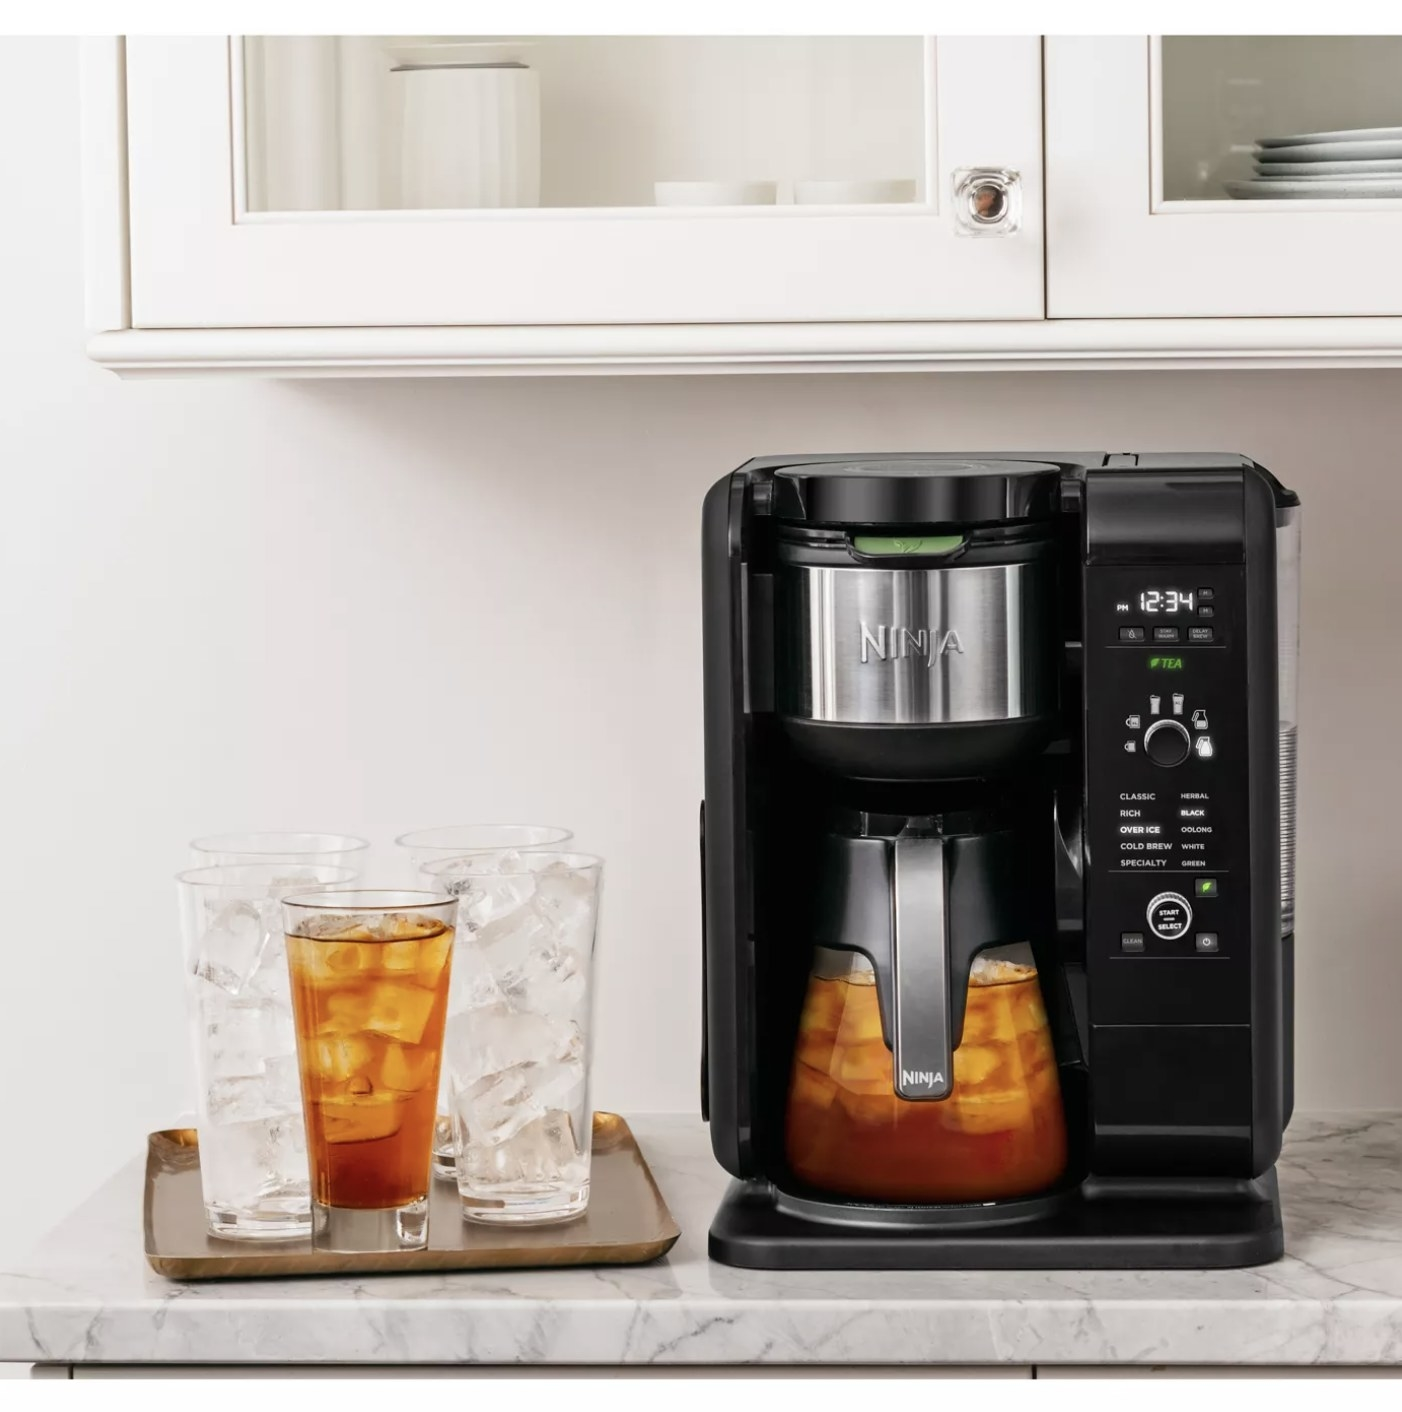 The cold brew coffee maker